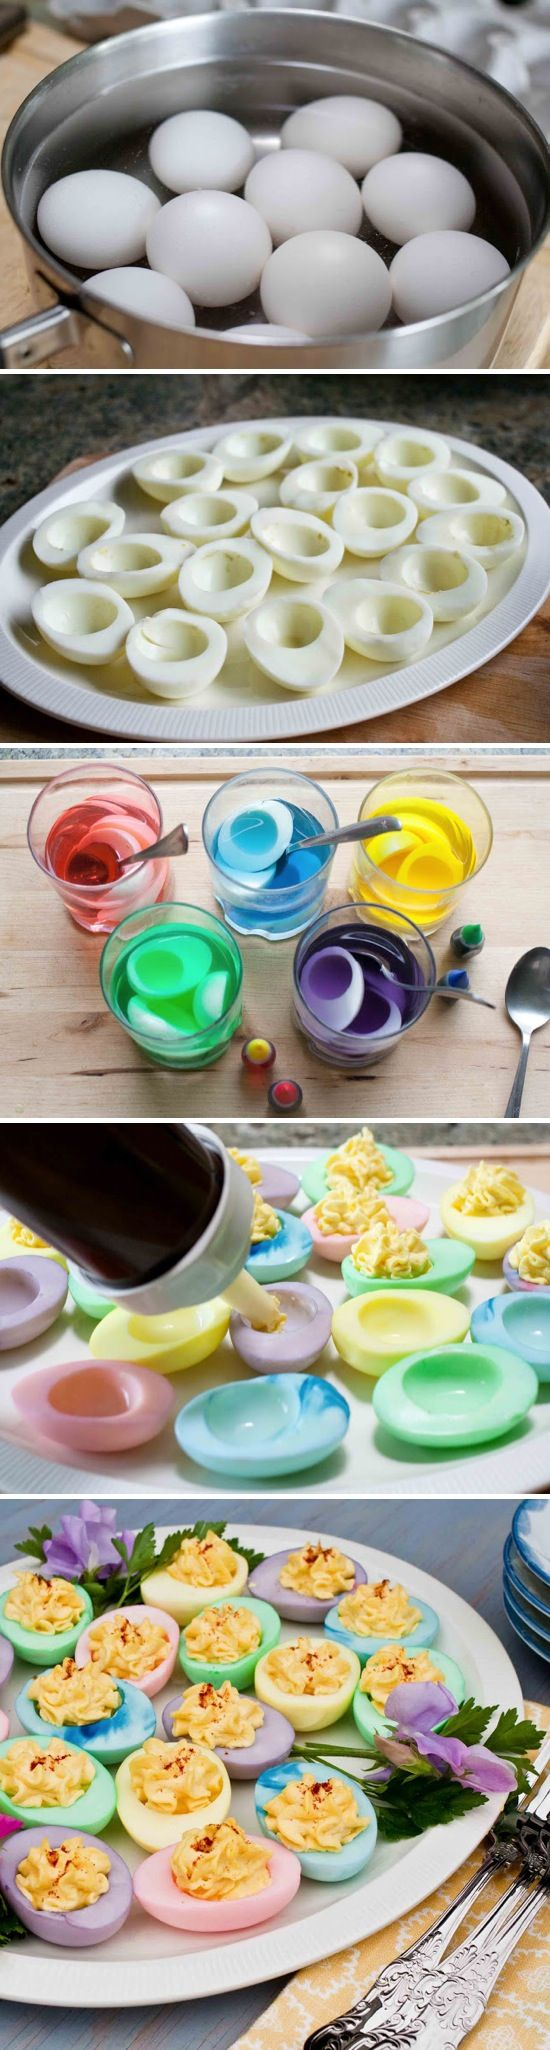 Finally.....Colorful Deviled Eggs